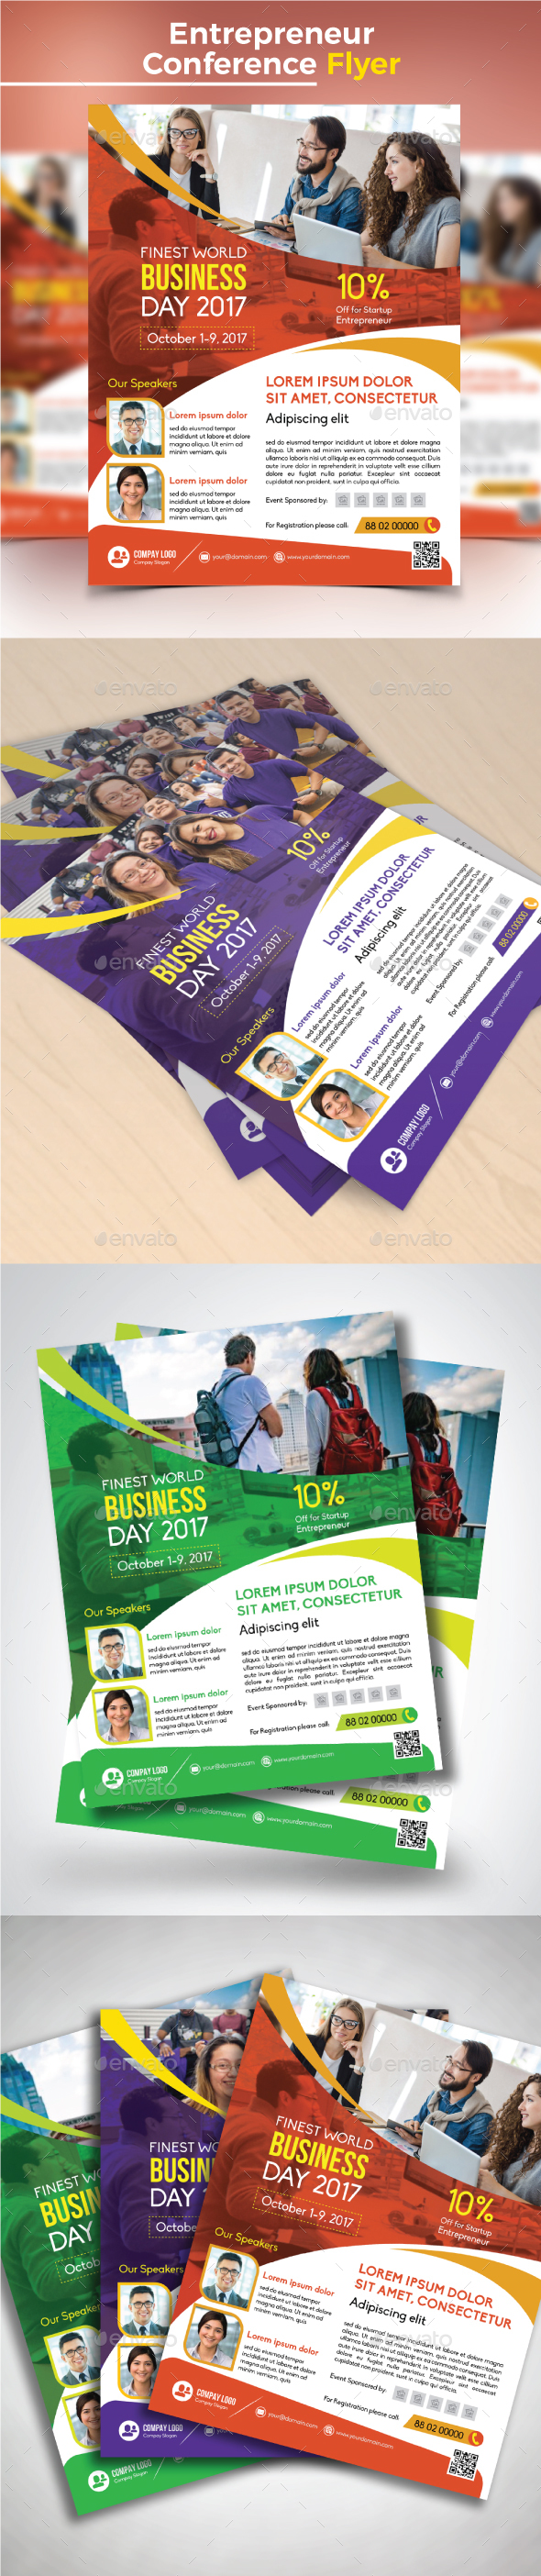 Entrepreneur Conference Flyer - Corporate Flyers